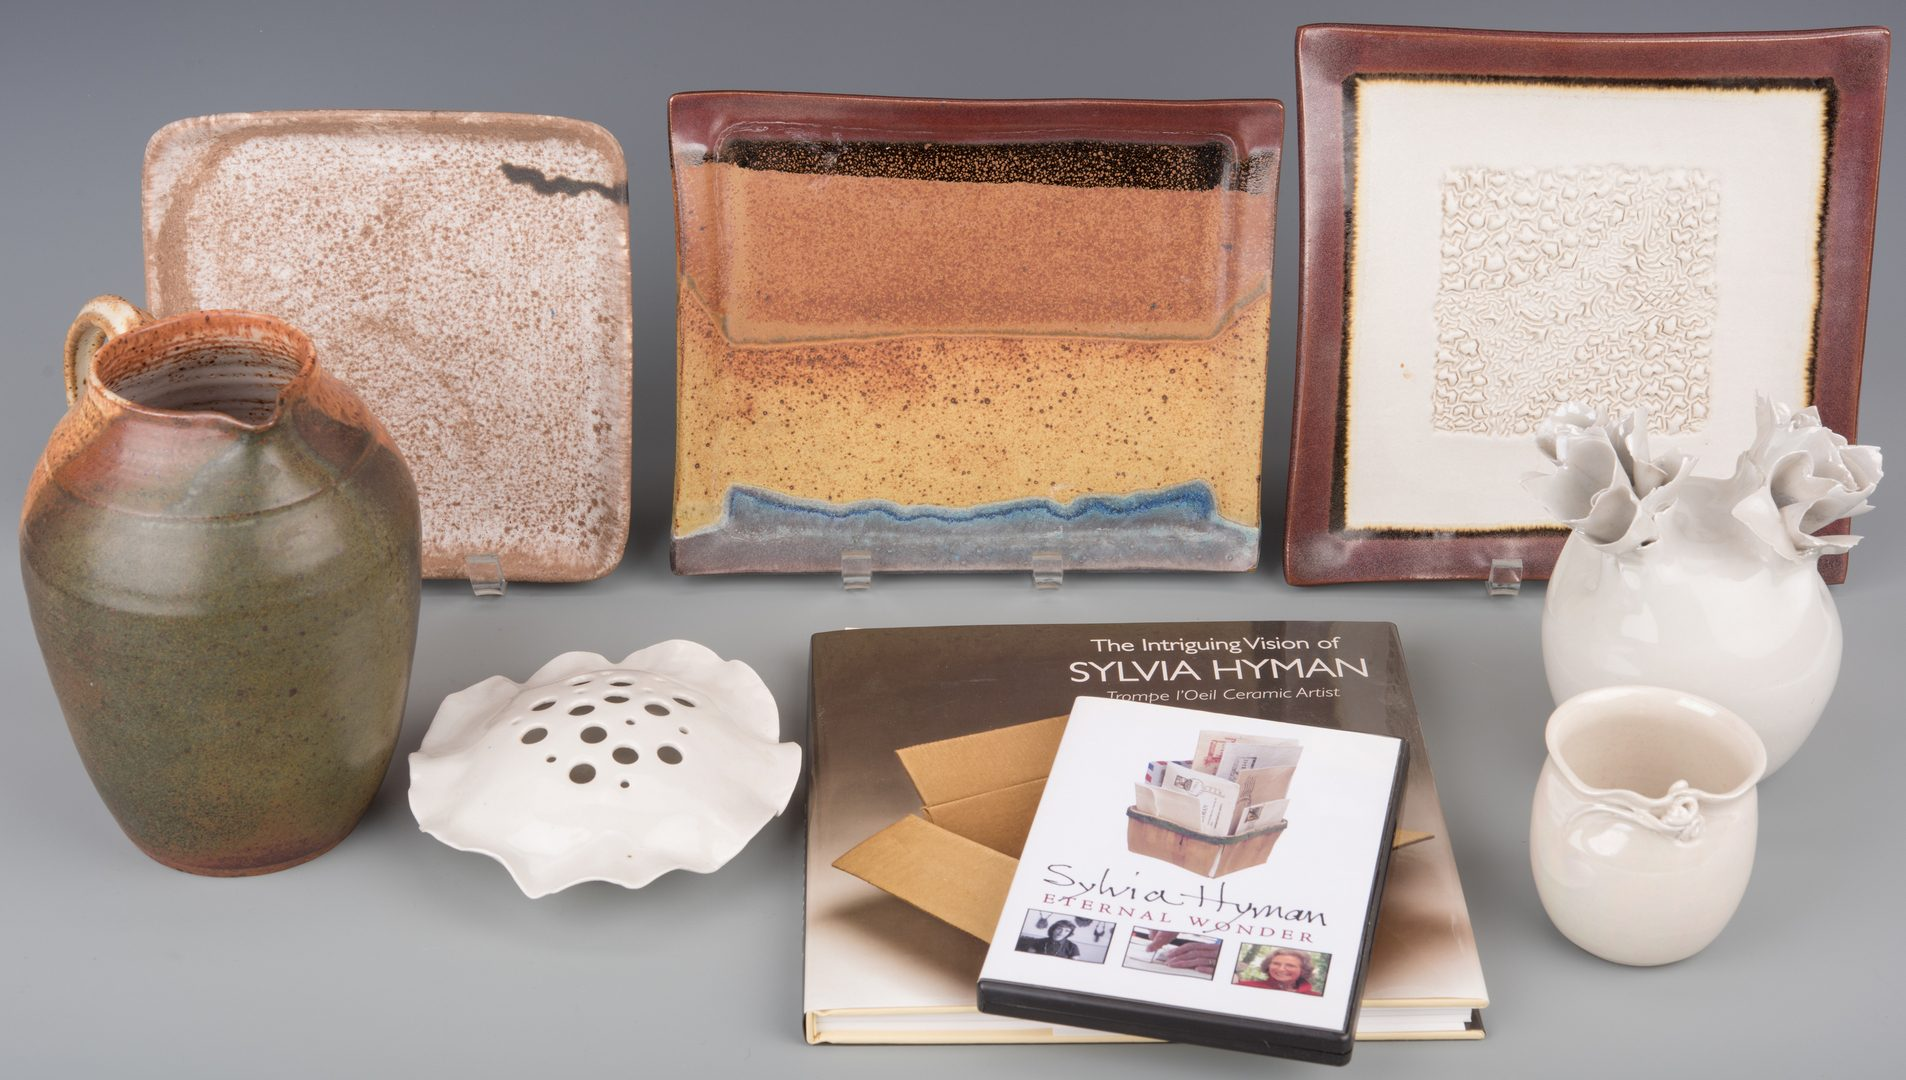 Lot 408: 7 Sylvia Hyman Ceramic Items & Book